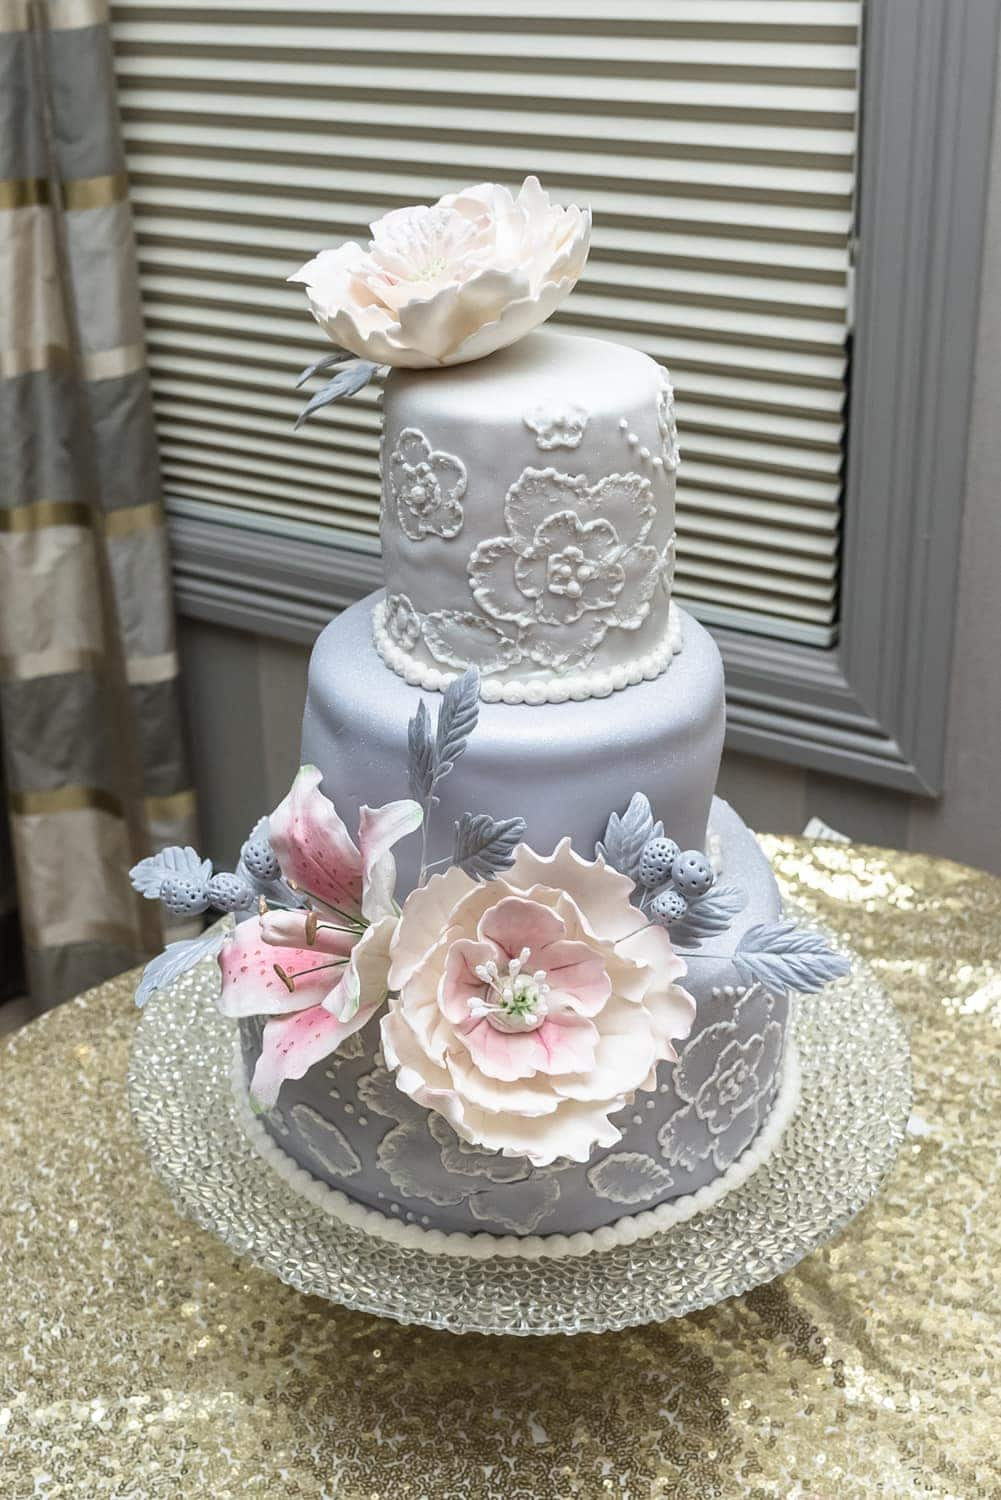 A 3 tier wedding cake with flower wedding cake toppers at an Ashburn Golf Club wedding.